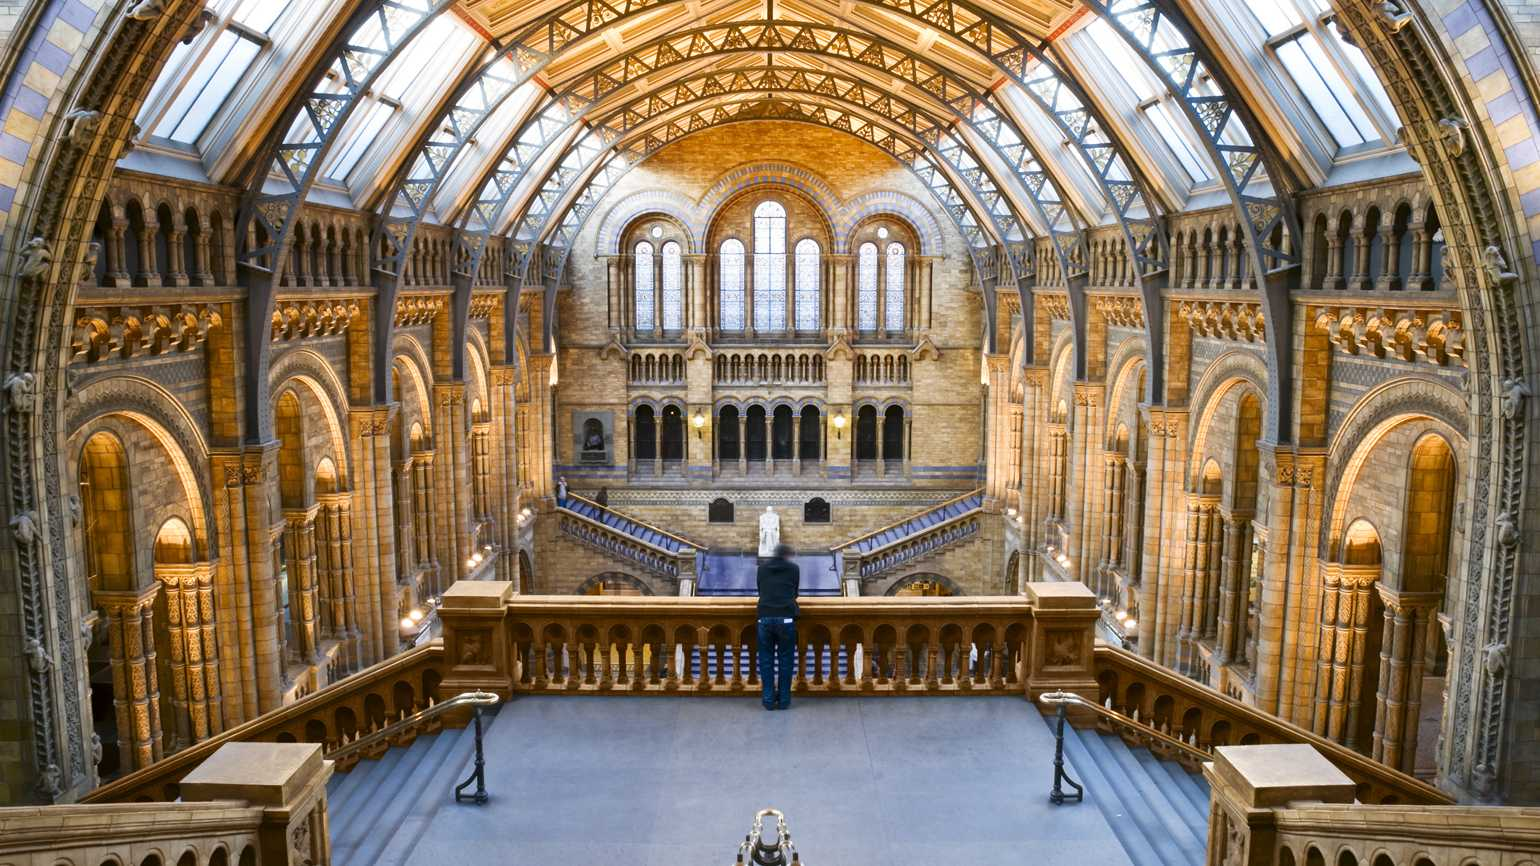 The inside of the Natural History Museum in London.